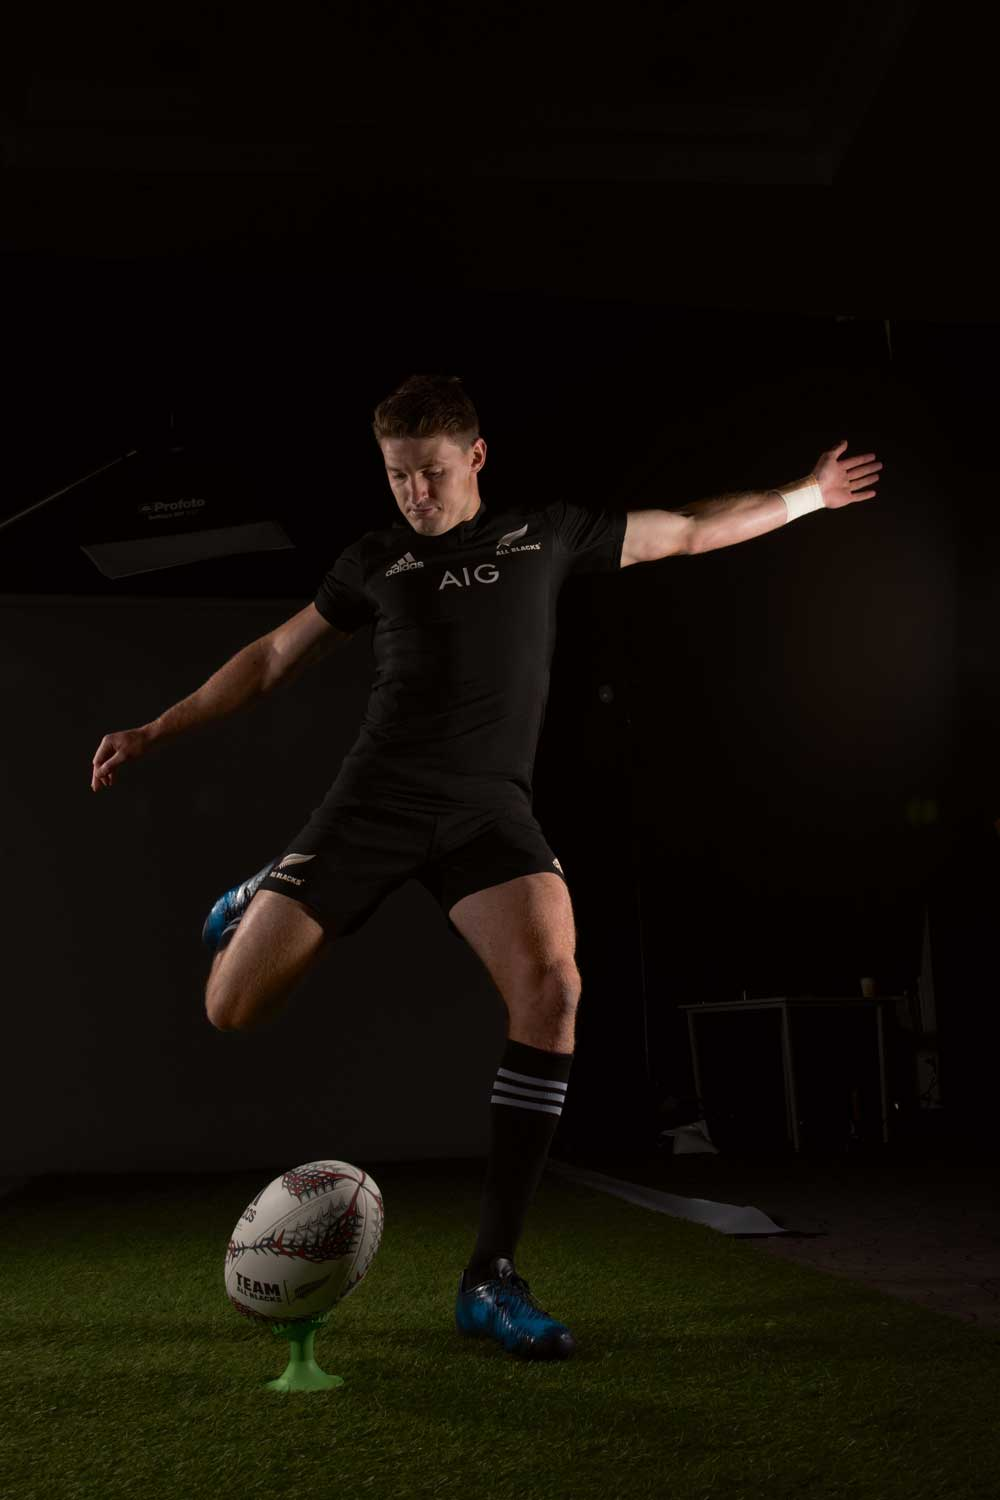 The calm boot of the All Blacks star Beauden Barrett